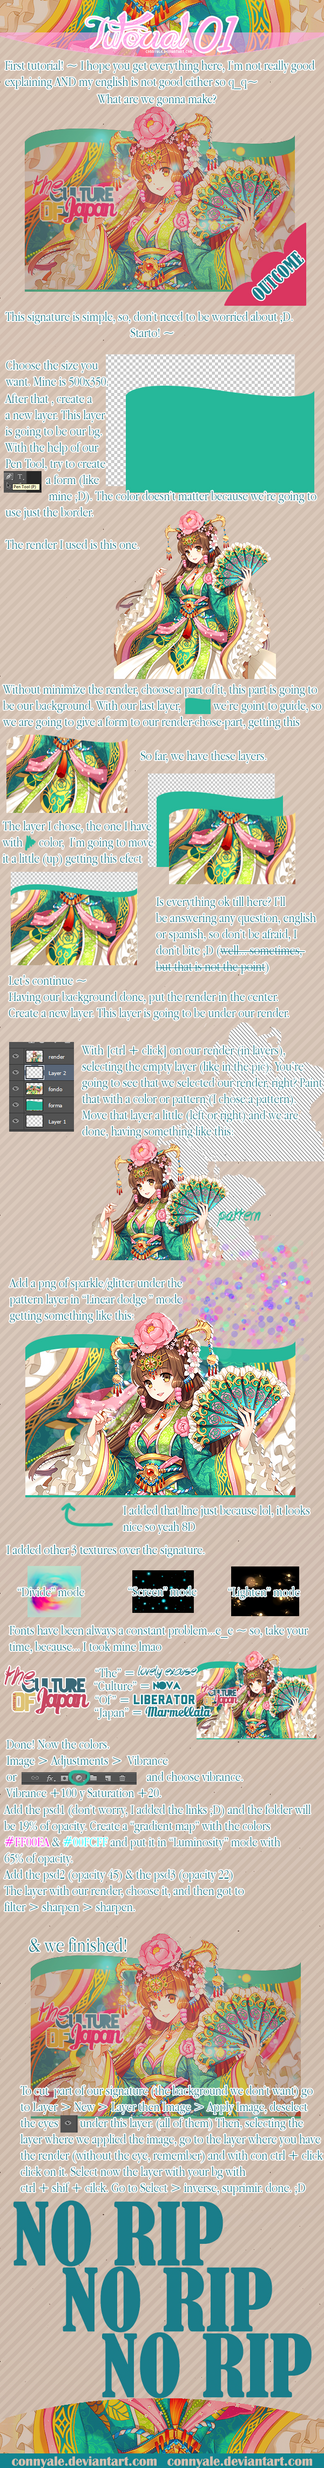 Tutorial 01- The culture of Japan - English ver. by ConnyAle